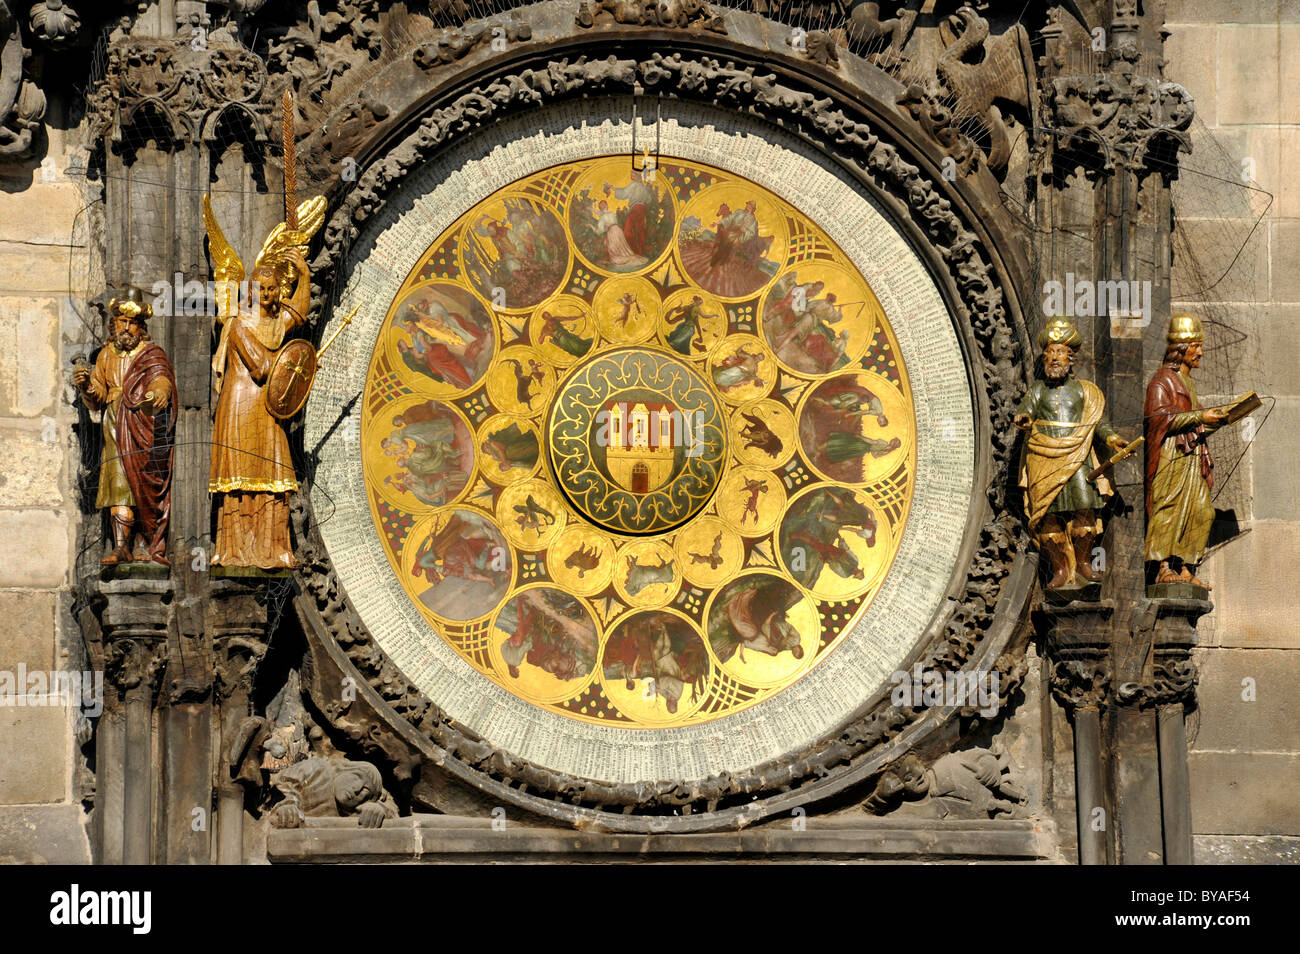 Calendar dial of the Prague Astronomical Clock on the clock tower of the Old Town City Hall, Old Town Square, historic - Stock Image